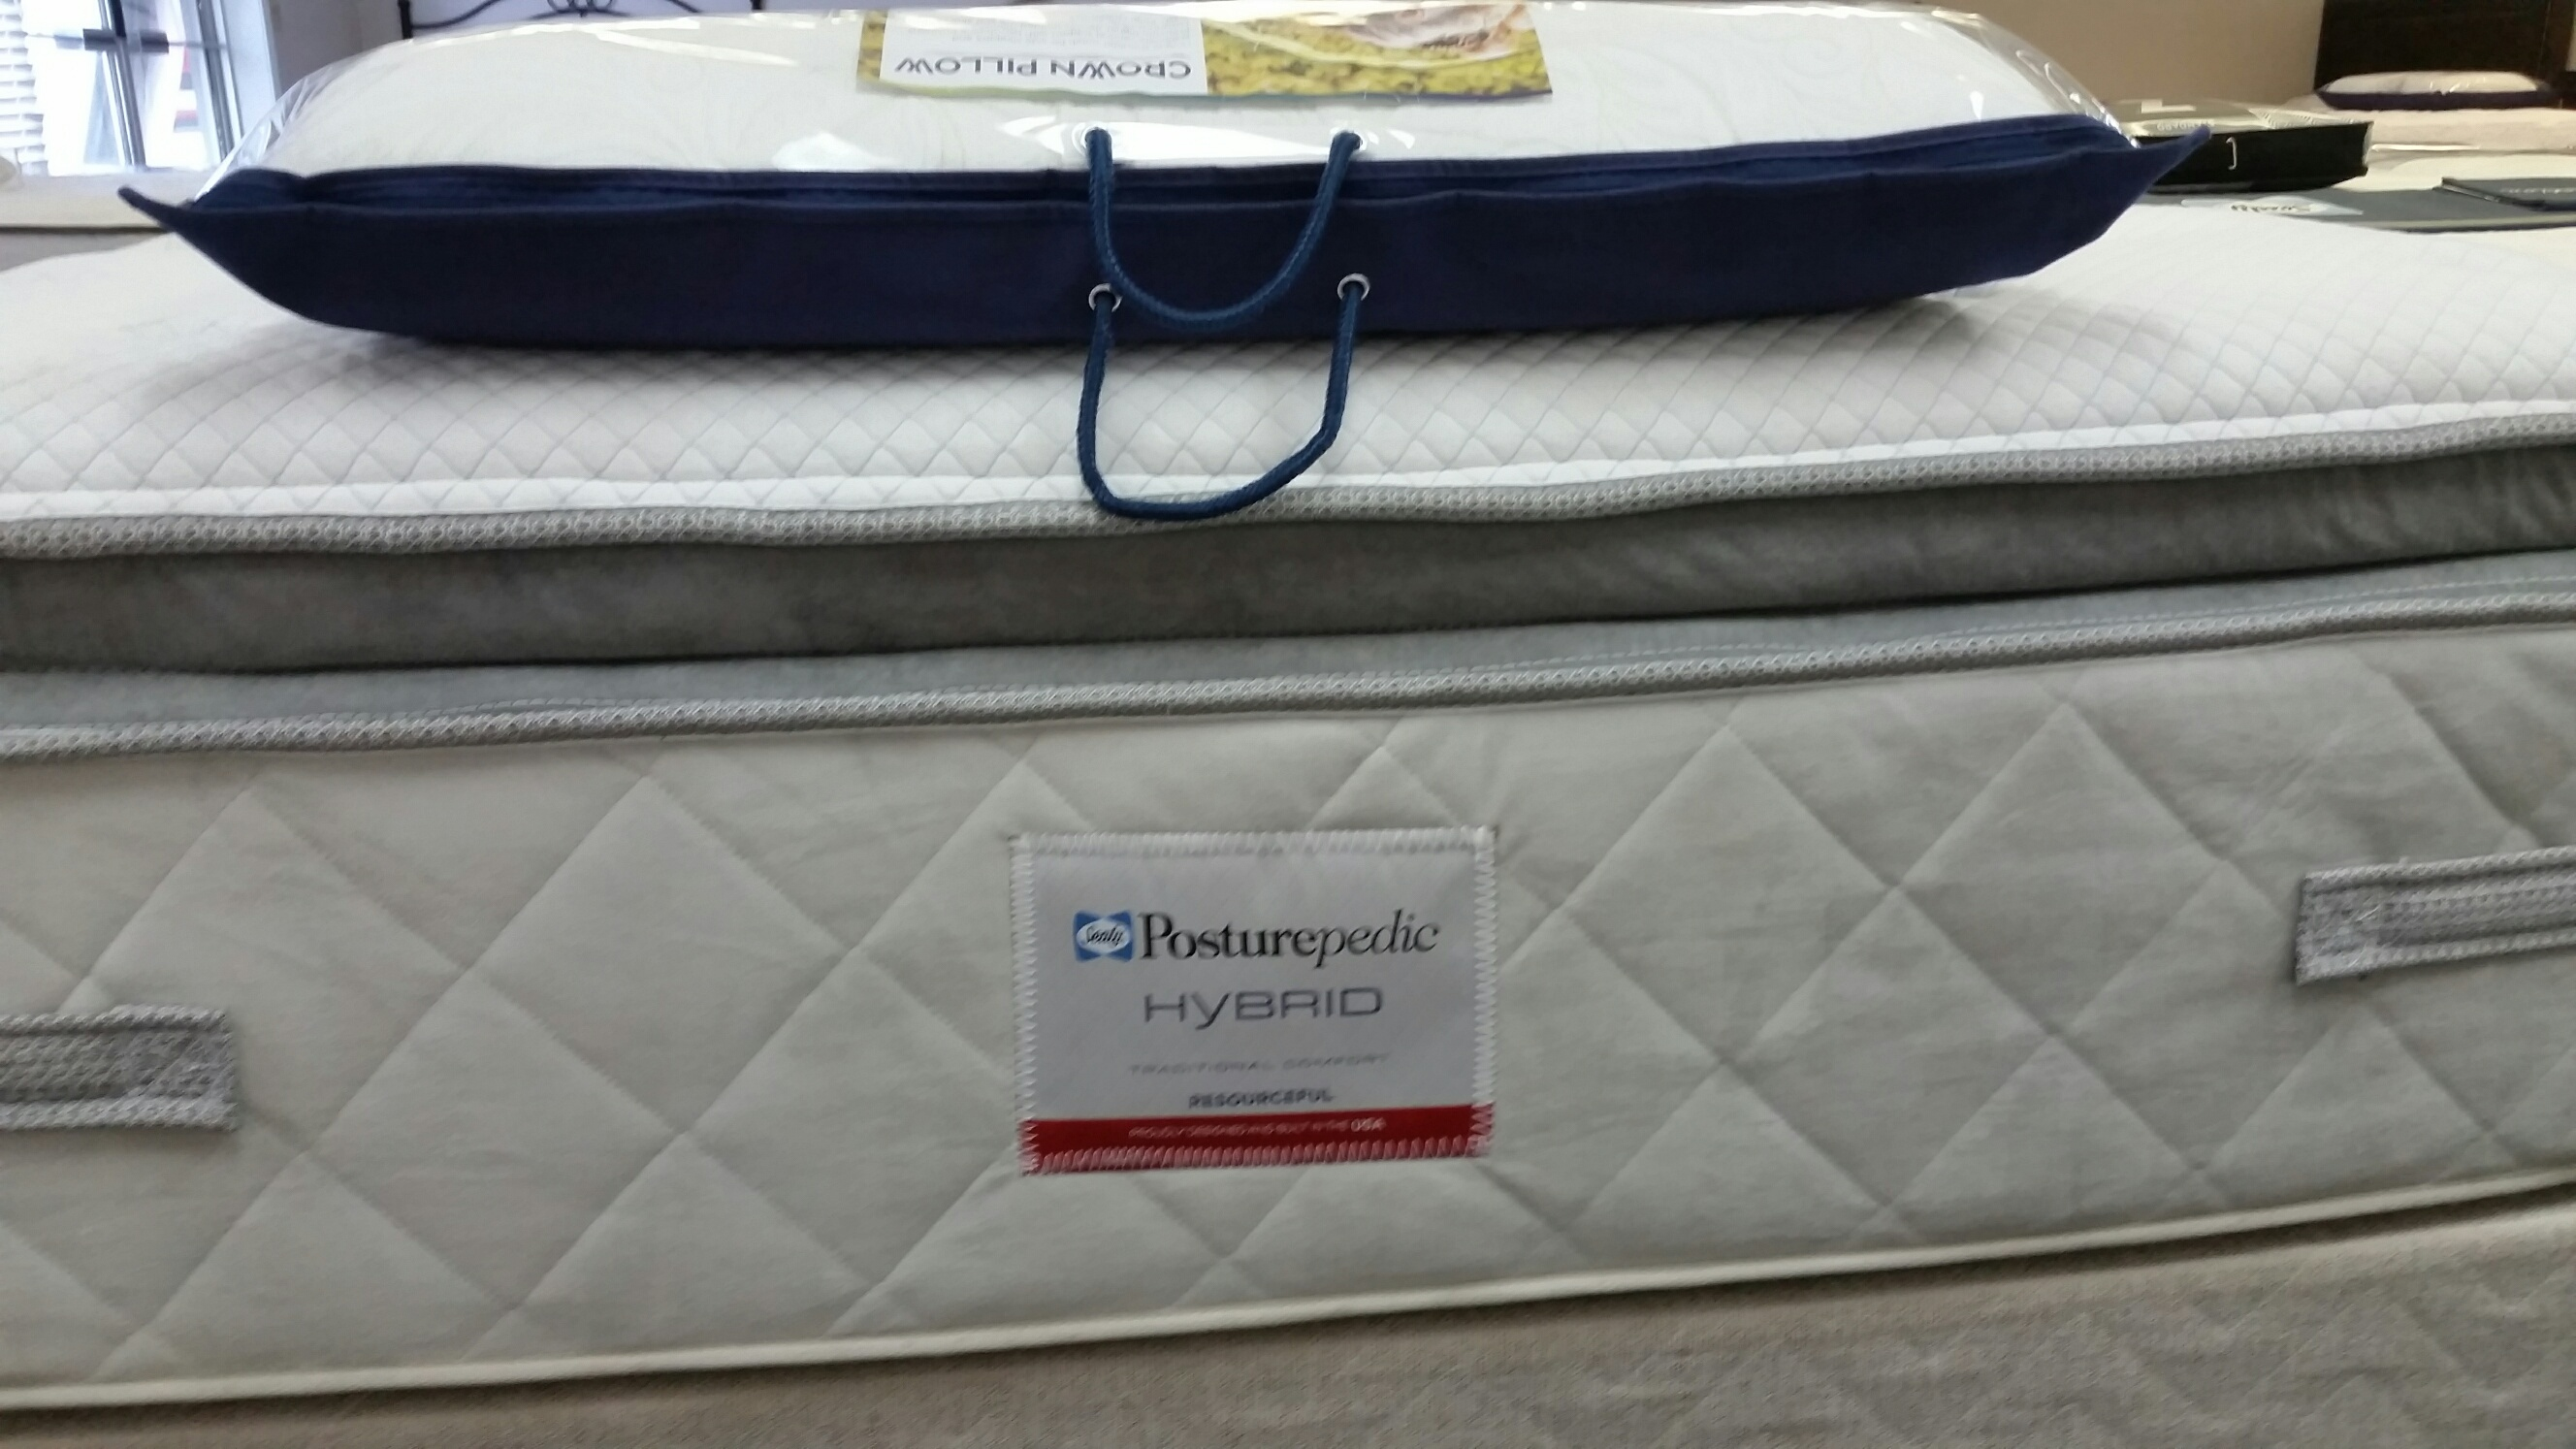 Mattress Deals image 67